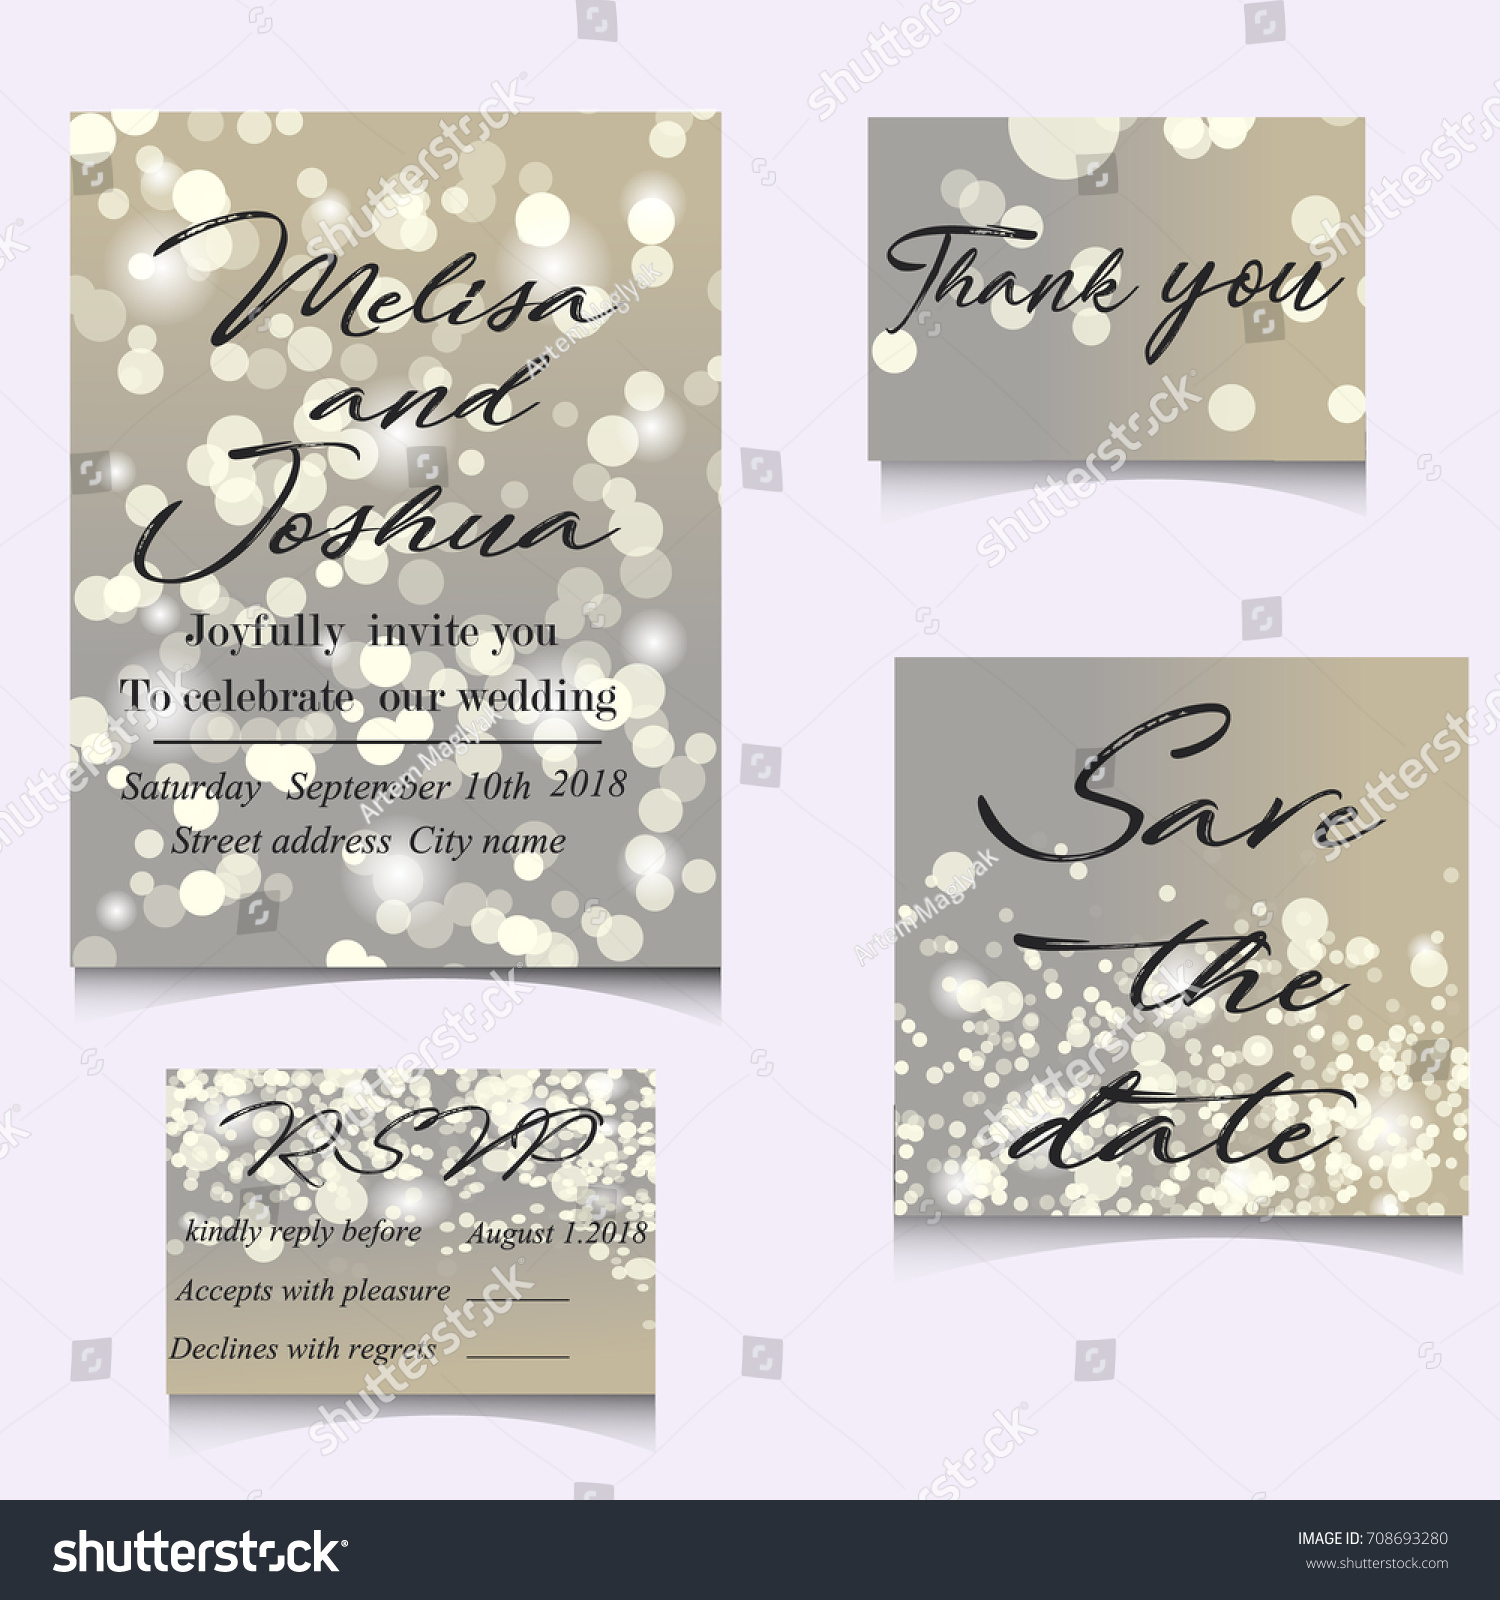 Wedding Invitation Cards Template Set Soft Stock Vector 708693280 ...